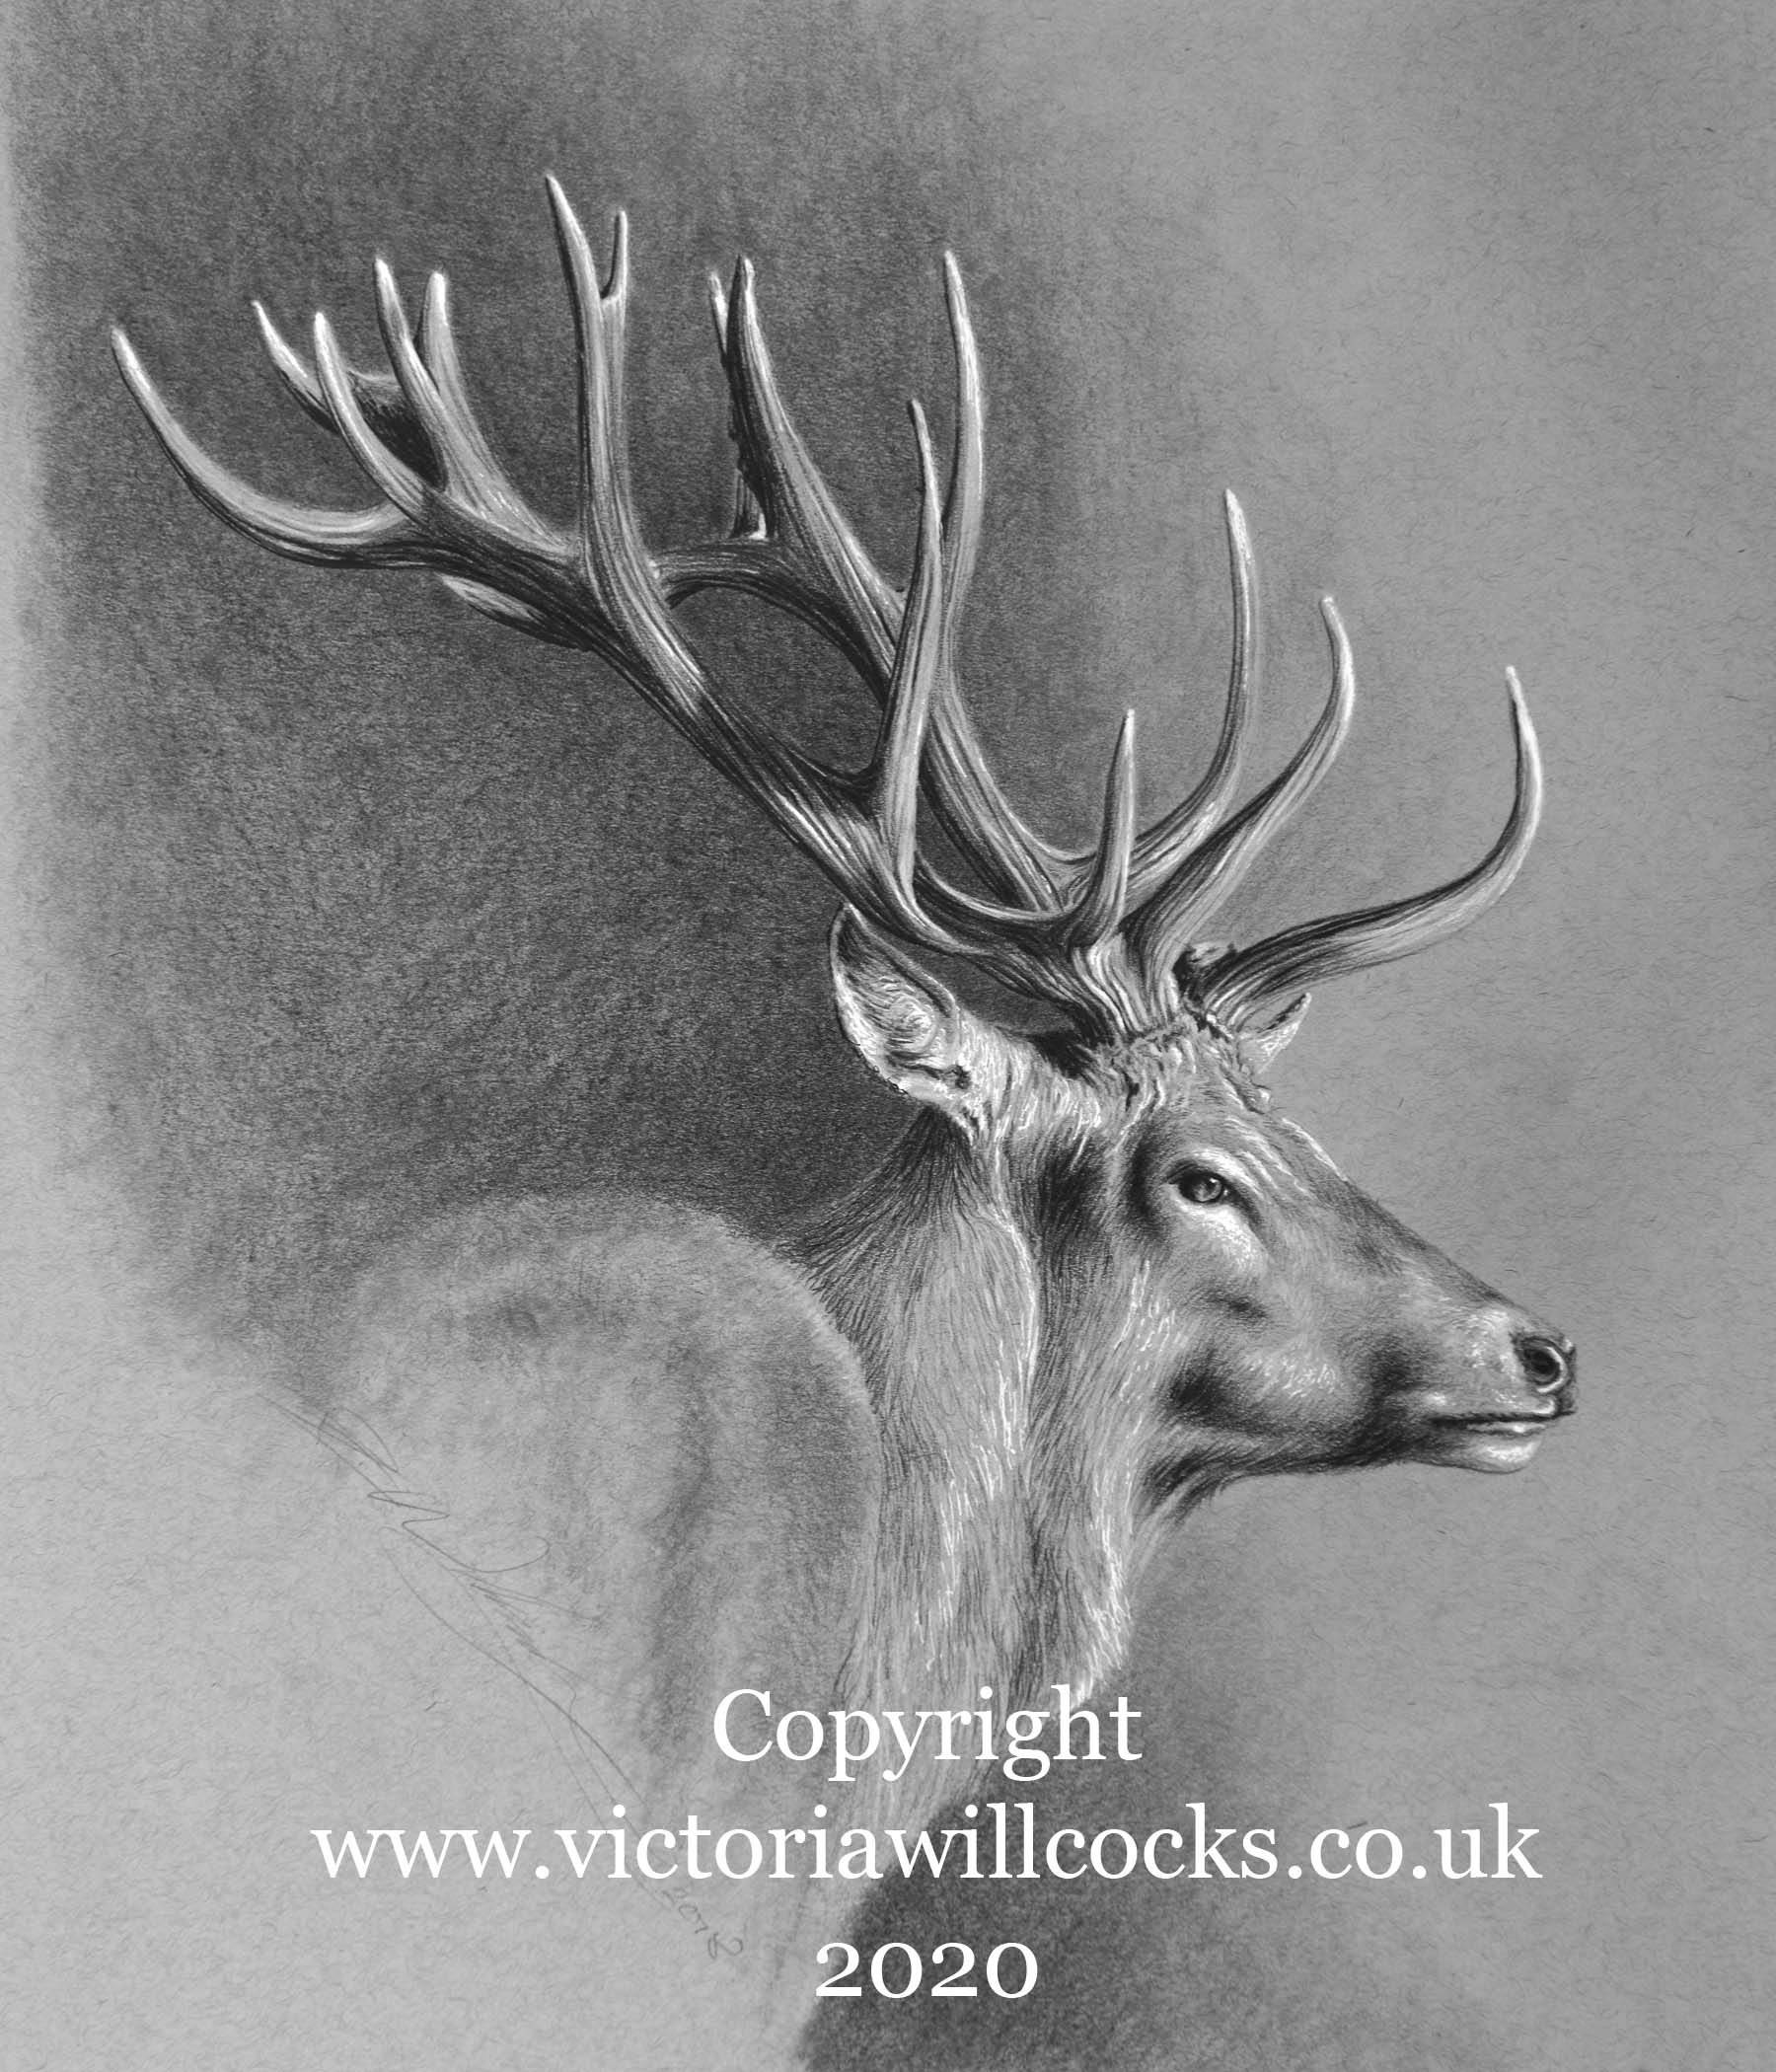 Reg Stag ii Victoria Willcocks